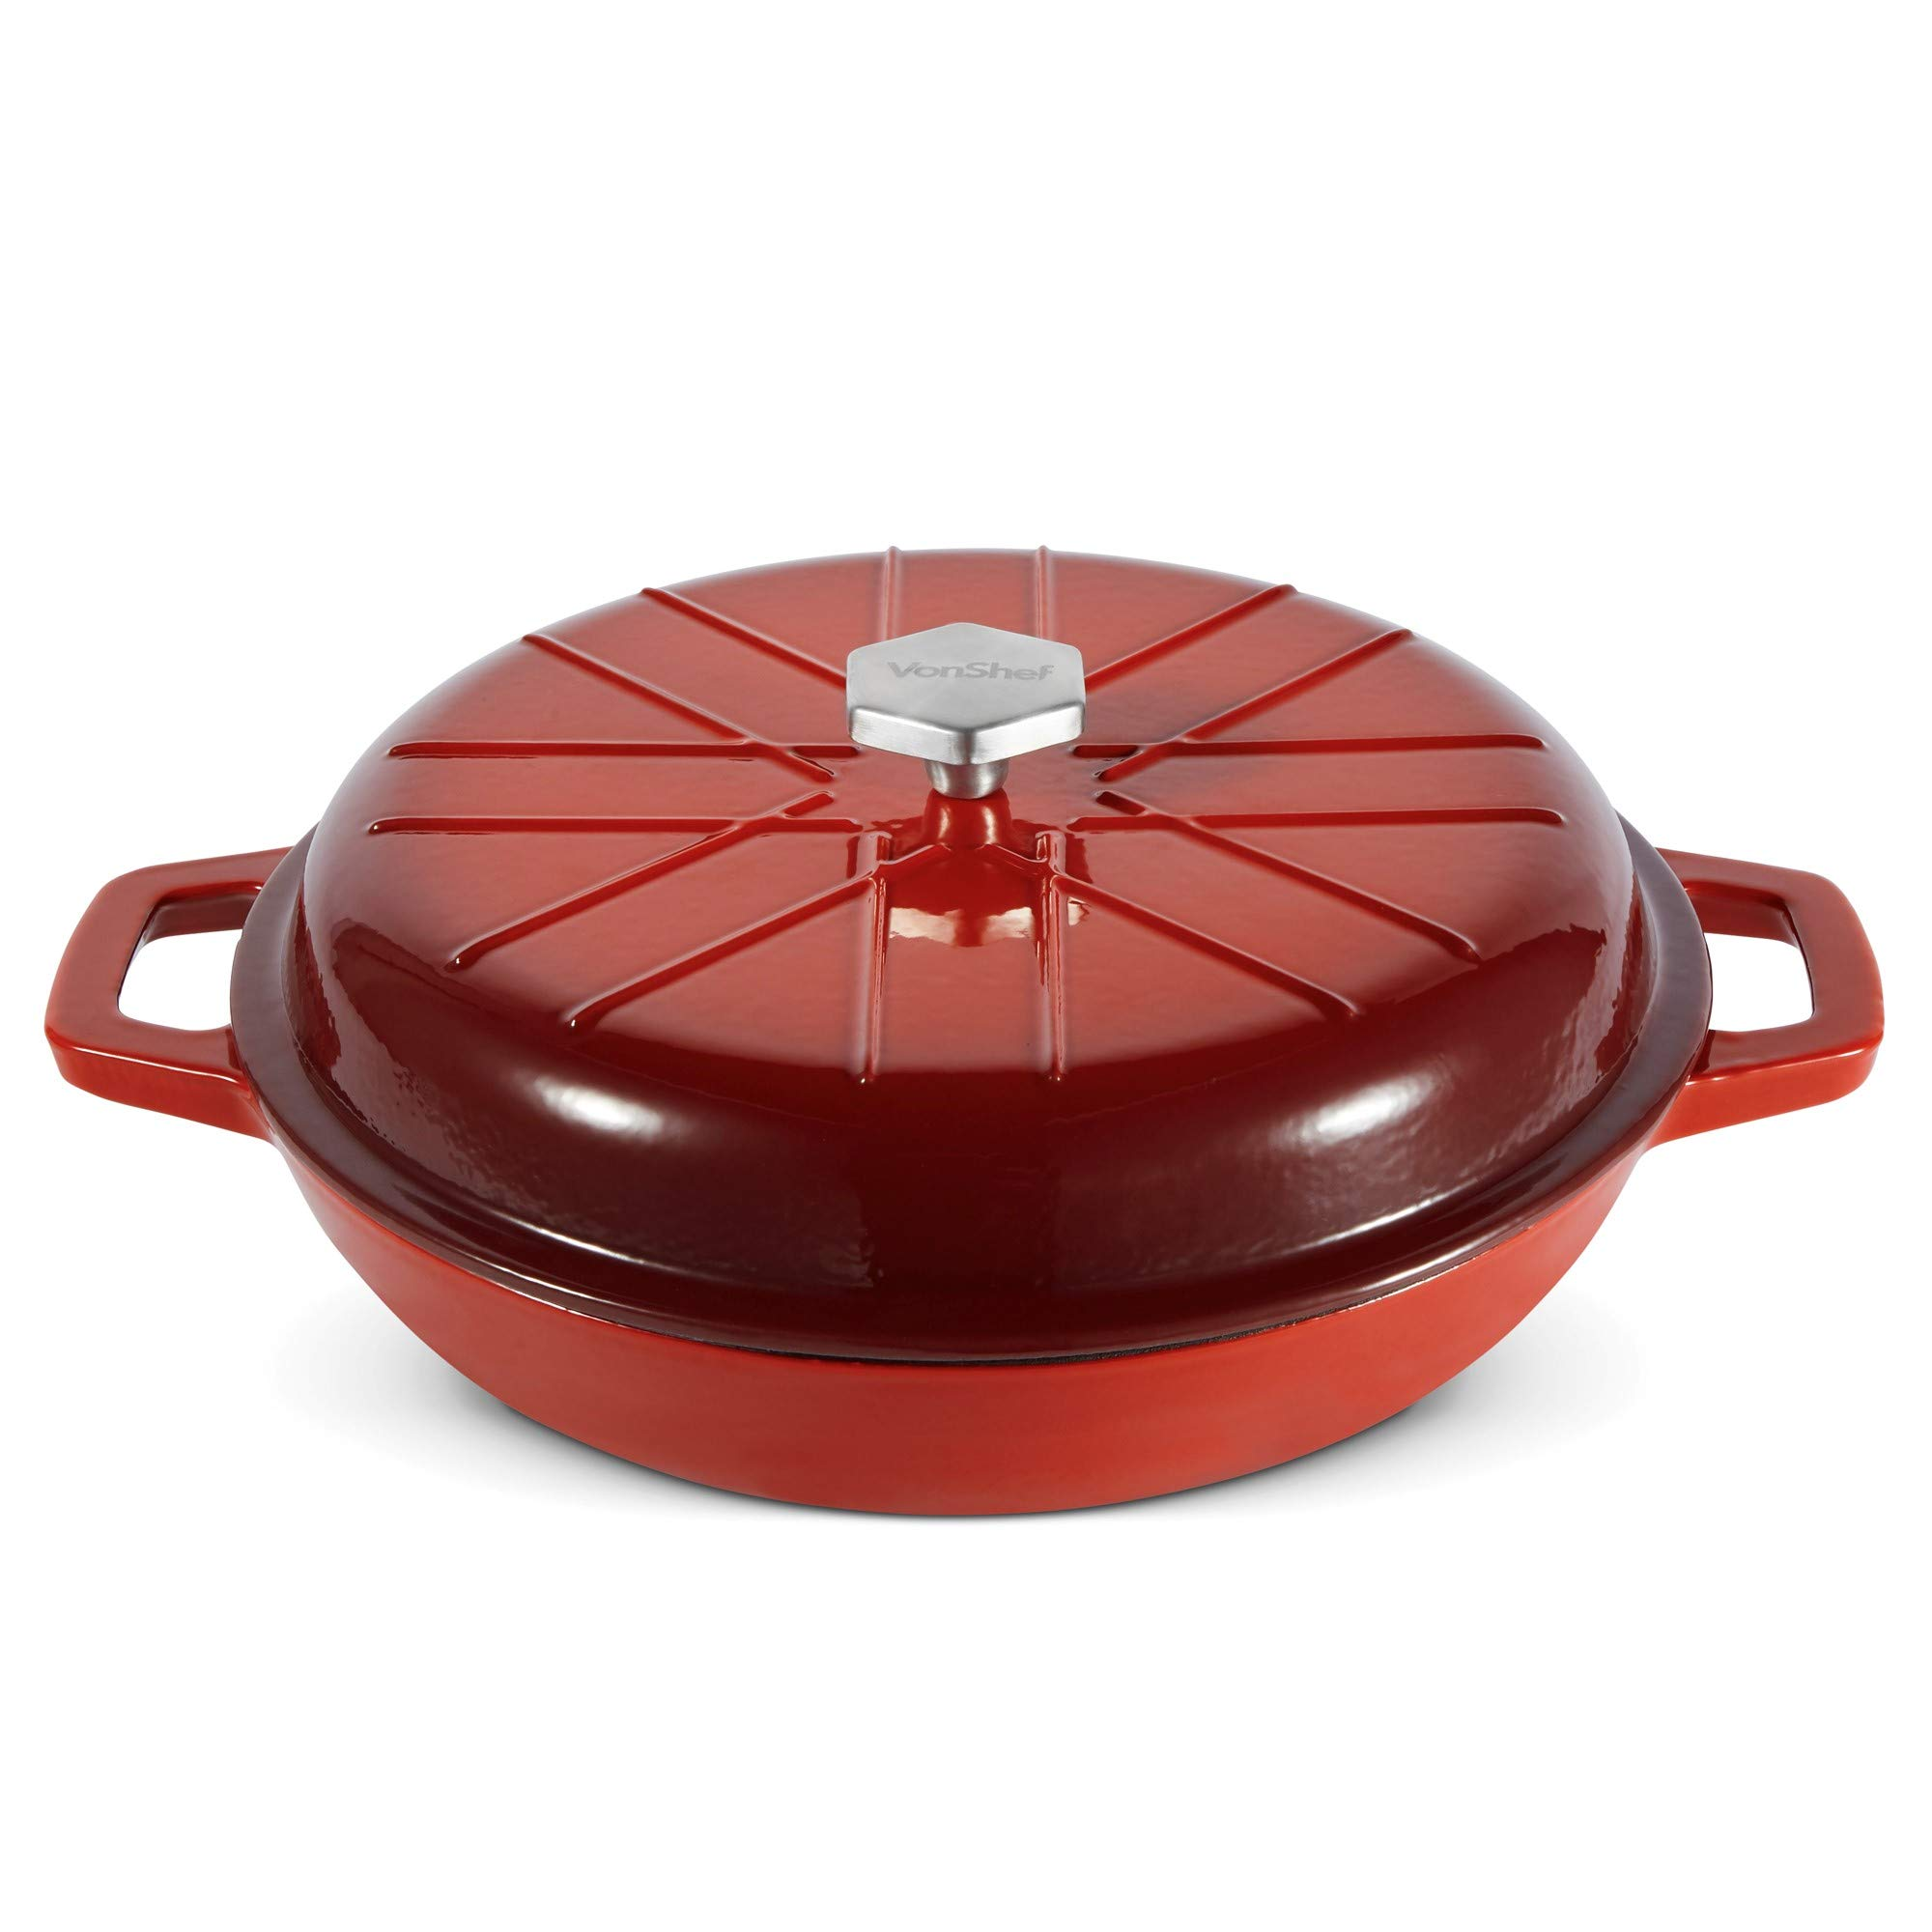 VonShef Cast Iron Shallow Dutch Oven Casserole Dish Braiser Pan With Non-Stick Enamel Coating, Signature VonShef Style Stew Pot, Red Ombre, 3 Quarts by VonShef